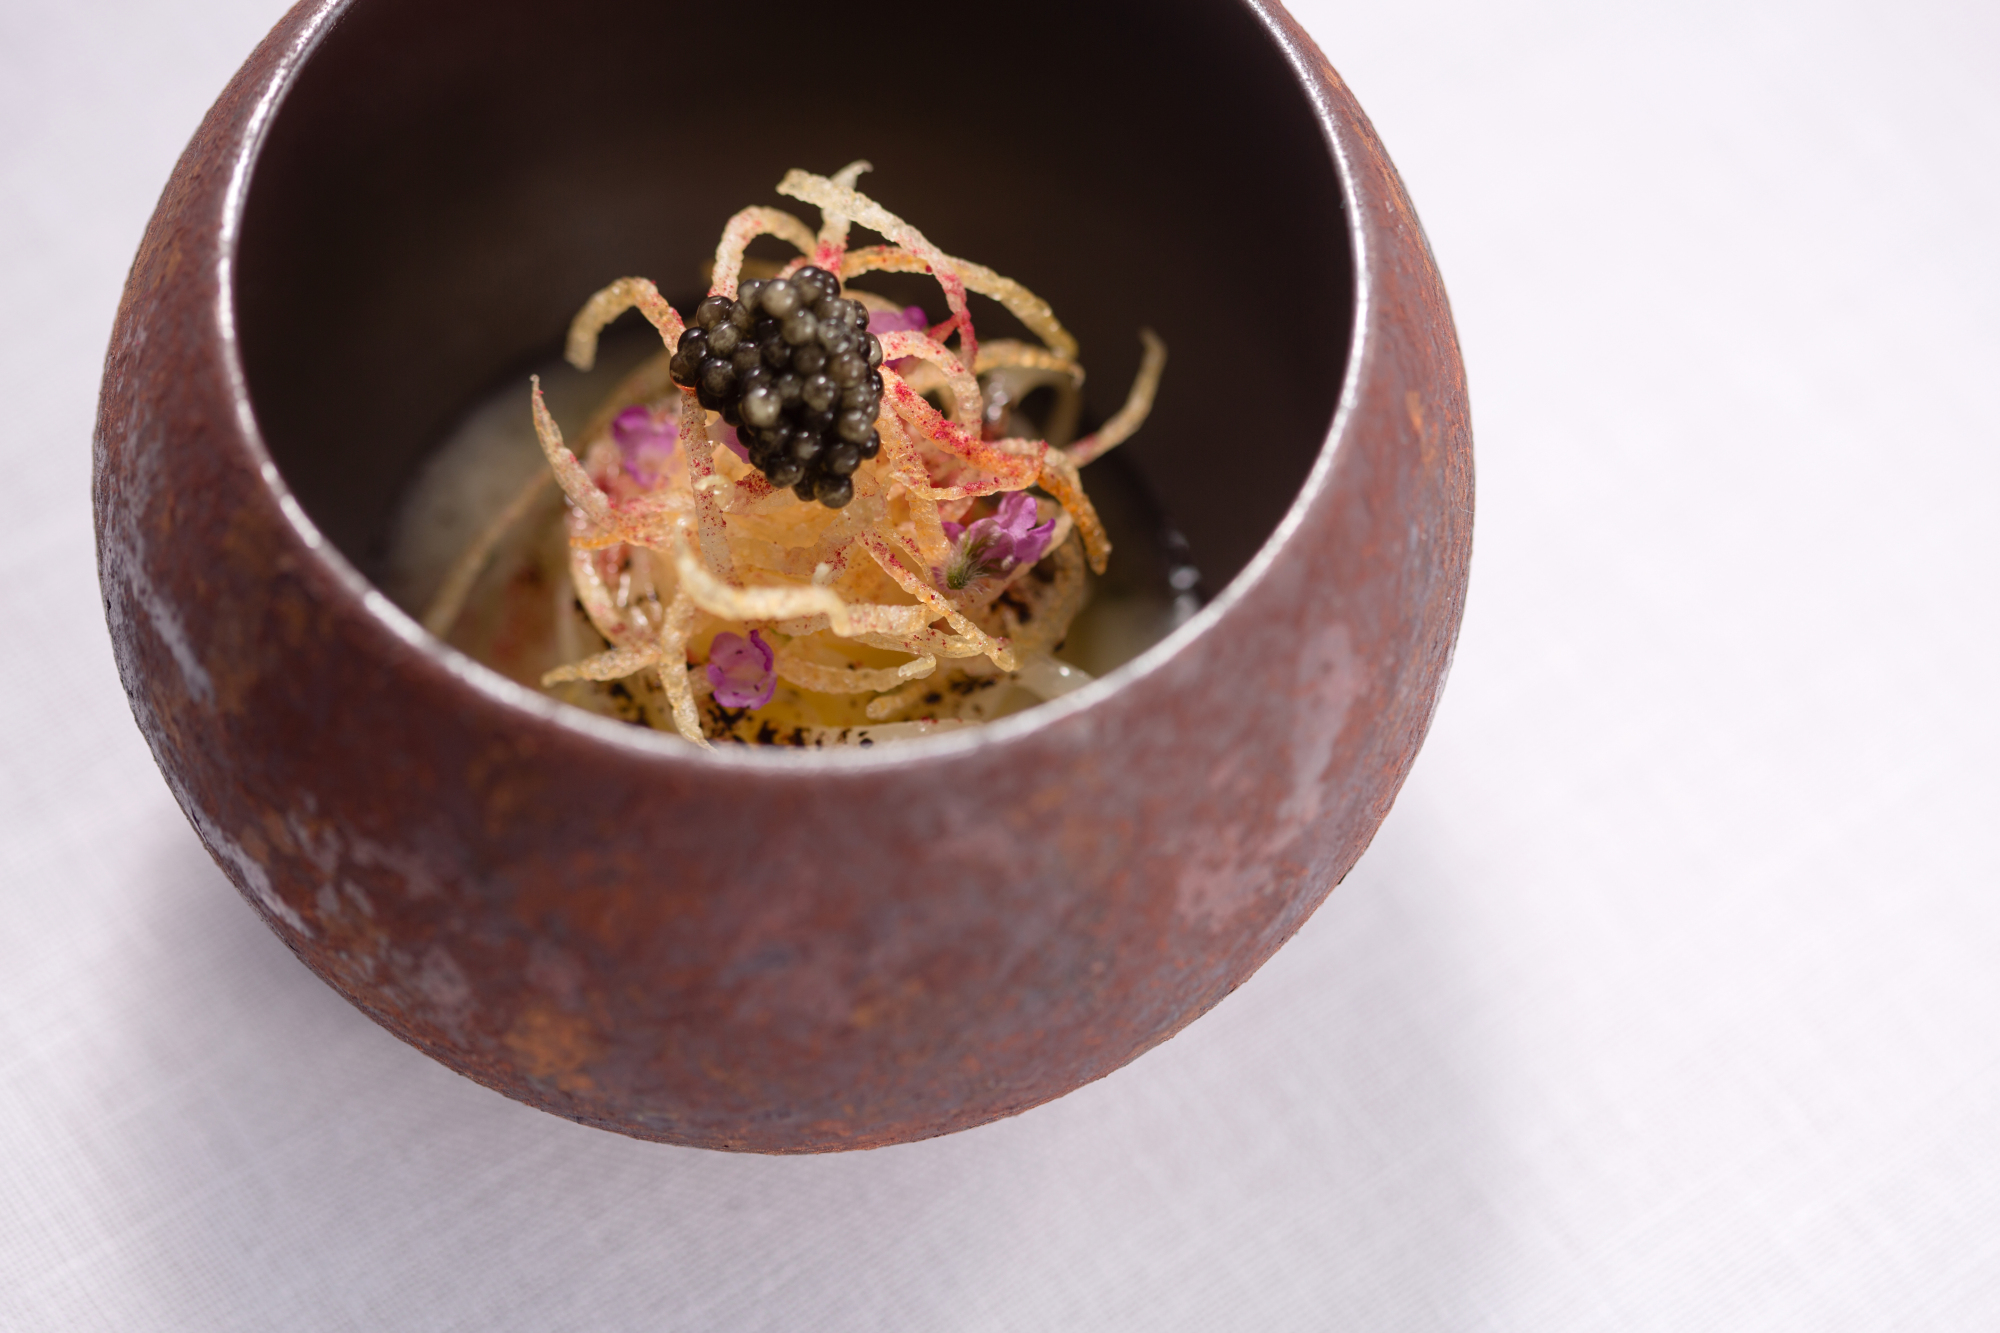 Elevating the humble potato: Chef Kotaro Noda's potato 'spaghetti' pairs well with aged wines that have roundness and depth to balance the richness of the dish. | COURTESY OF FARO